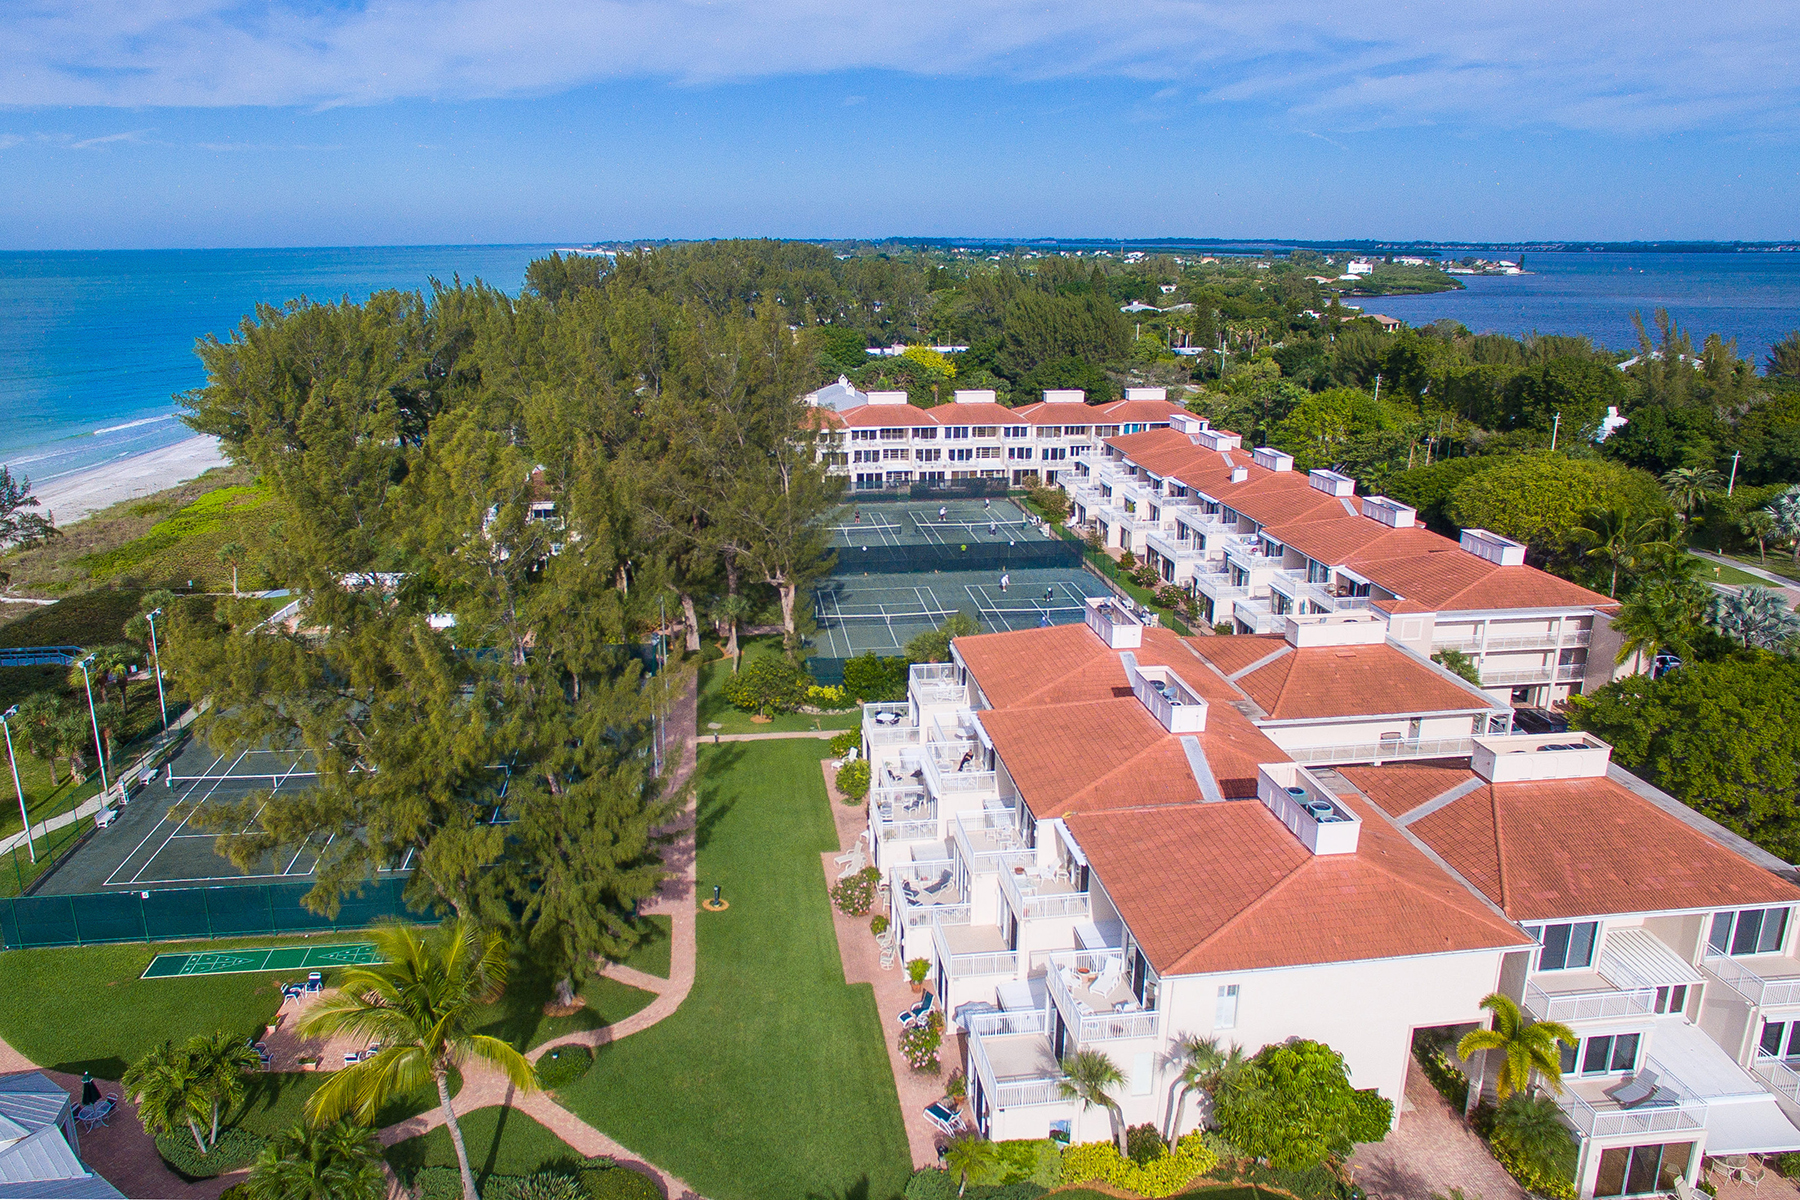 Piso por un Venta en CLUB LONGBOAT BEACH & TENNIS 5055 Gulf Of Mexico Dr 324 Longboat Key, Florida 34228 Estados Unidos